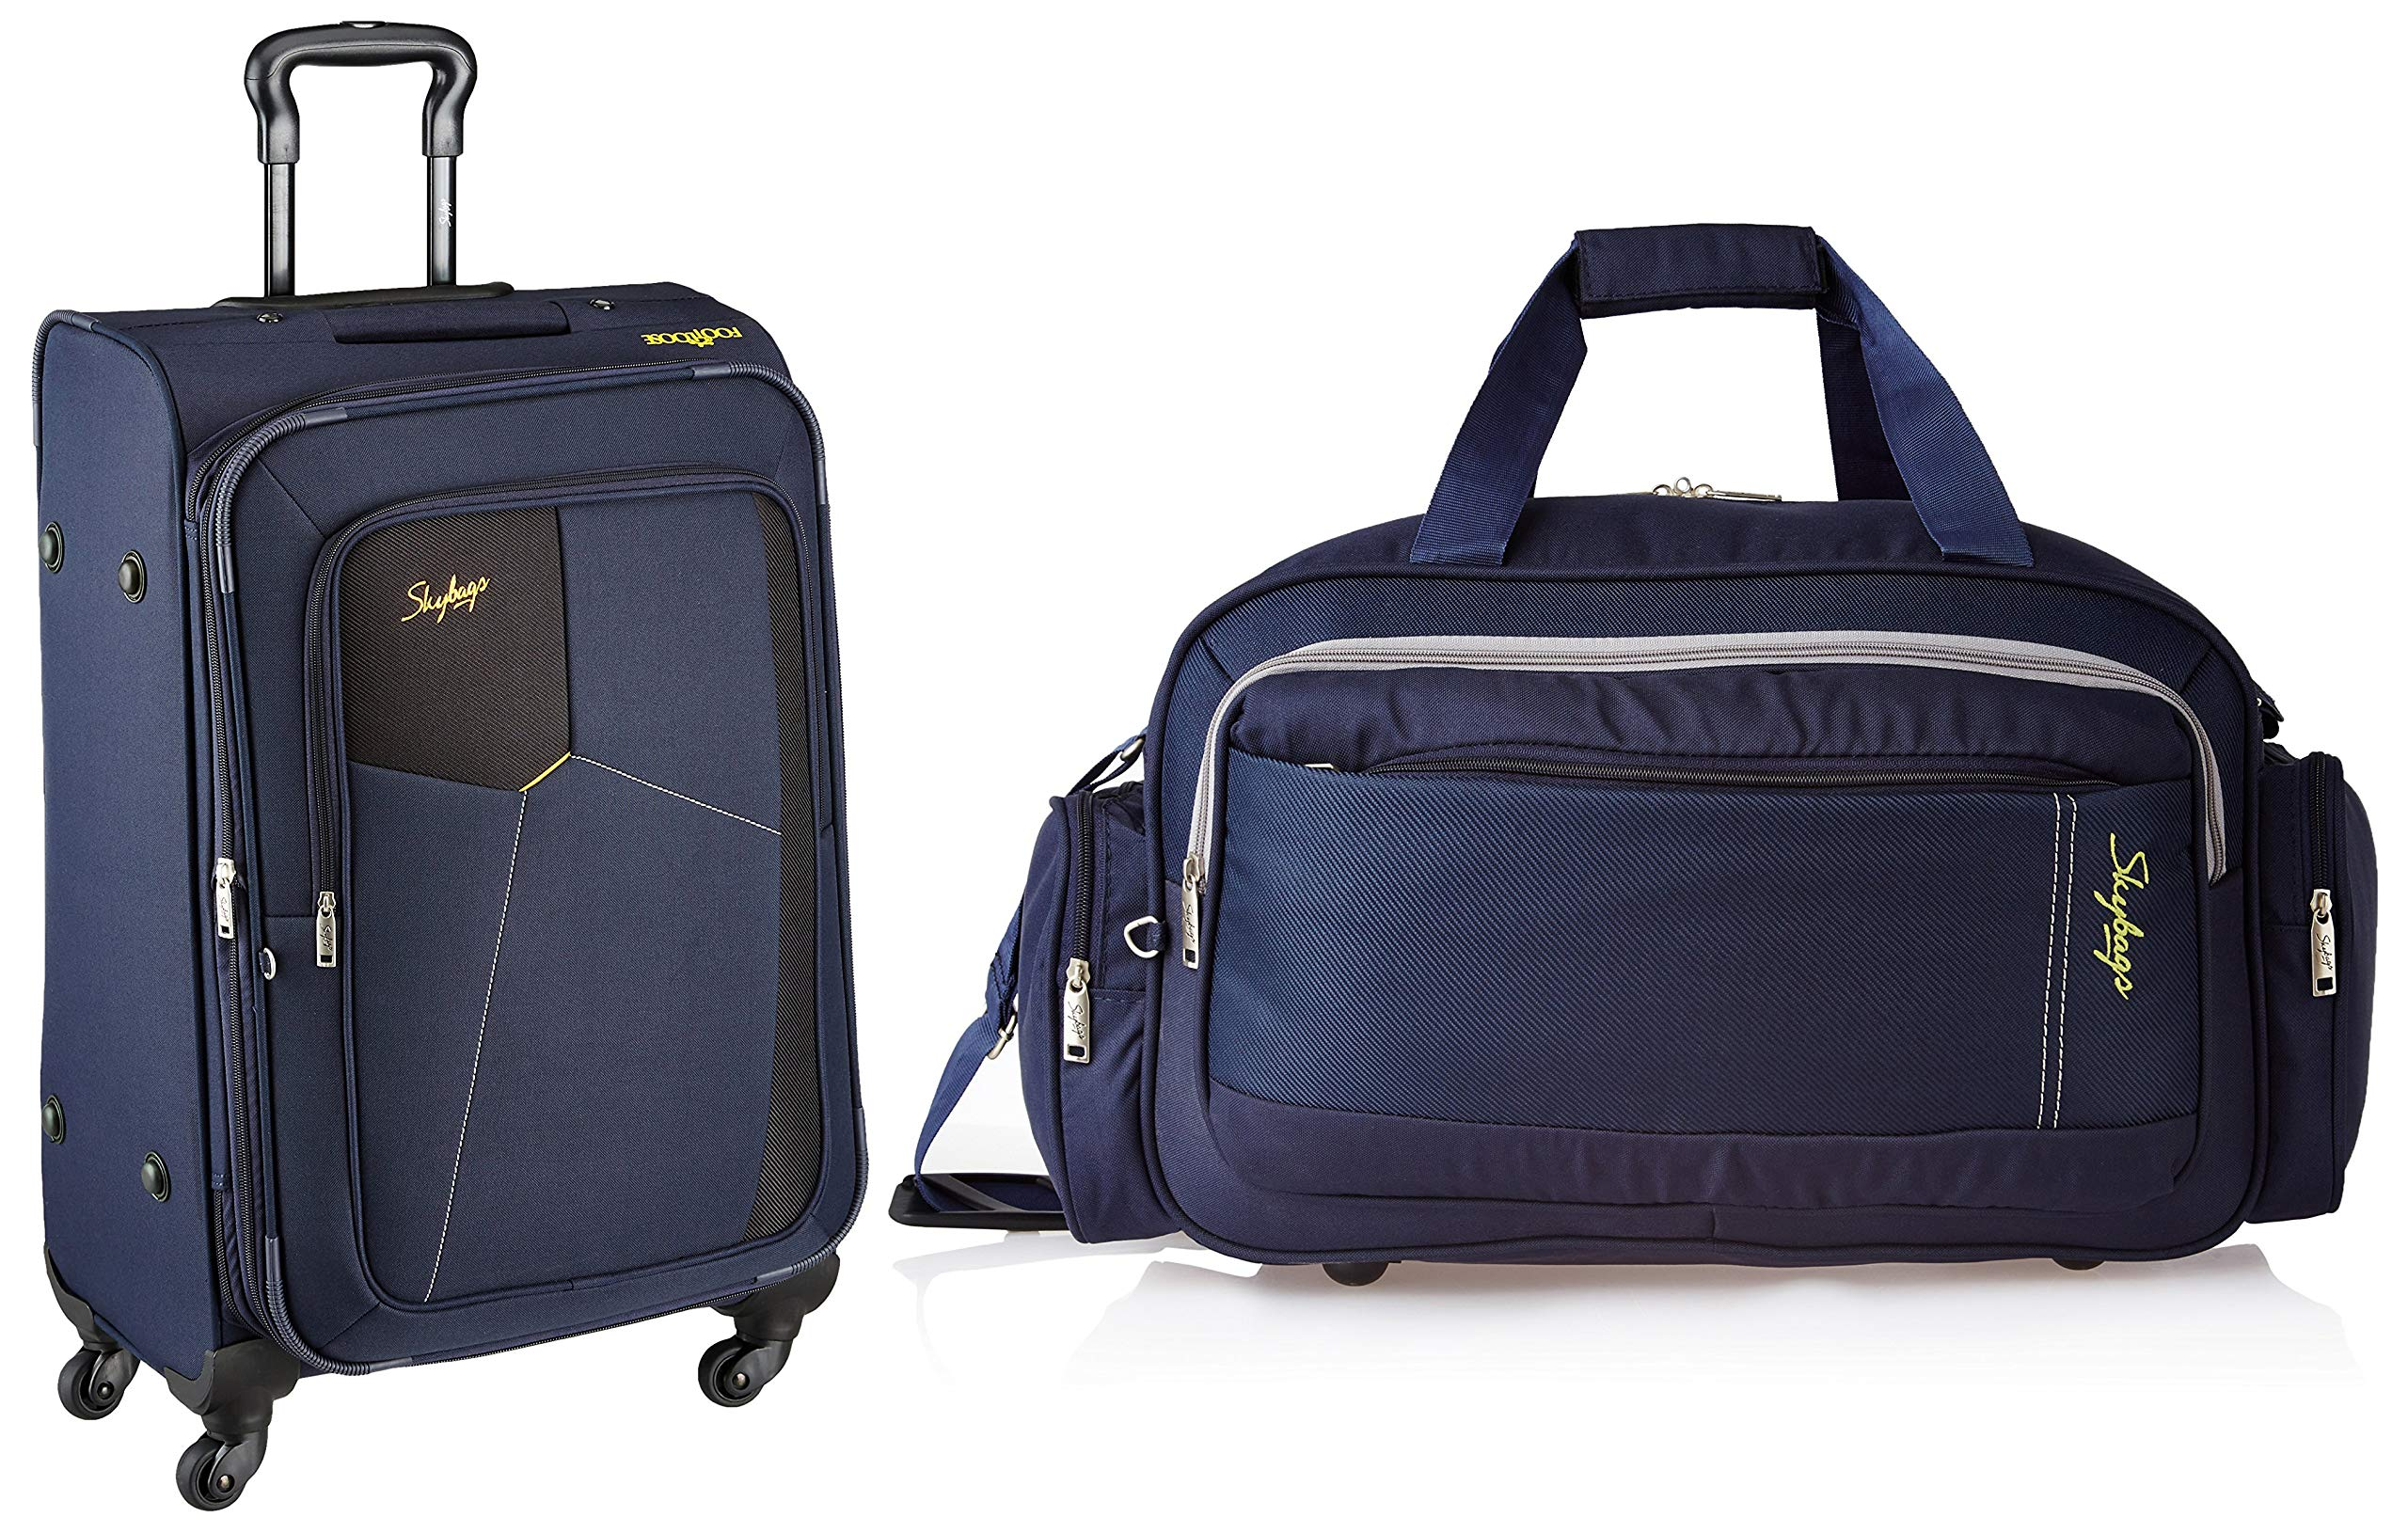 Skybags Footloose Rubik Polyester 580 mm Blue Softsided Cabin Luggage + Cardiff Polyester 55 cms Blue Travel Duffle (STRUW58EBLU + DFCAR55BLU) product image